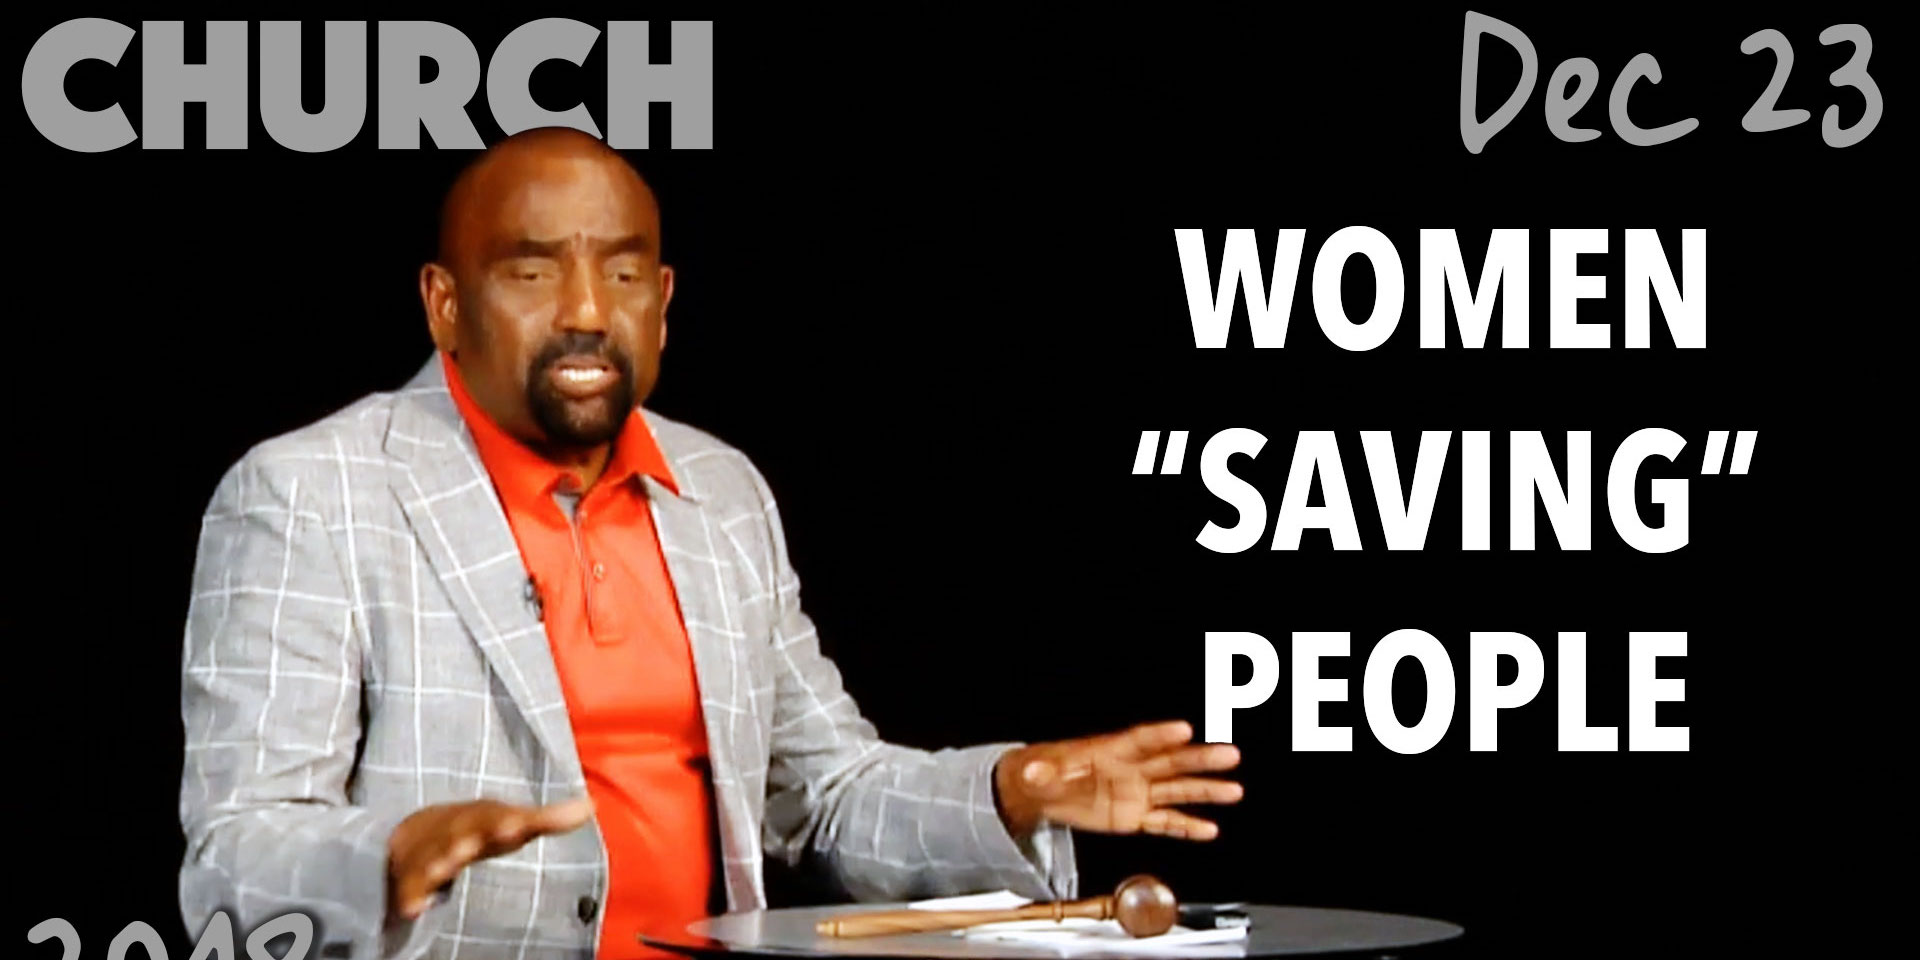 """Why Do Women Want to """"Save"""" People? (Church, Dec 23)"""